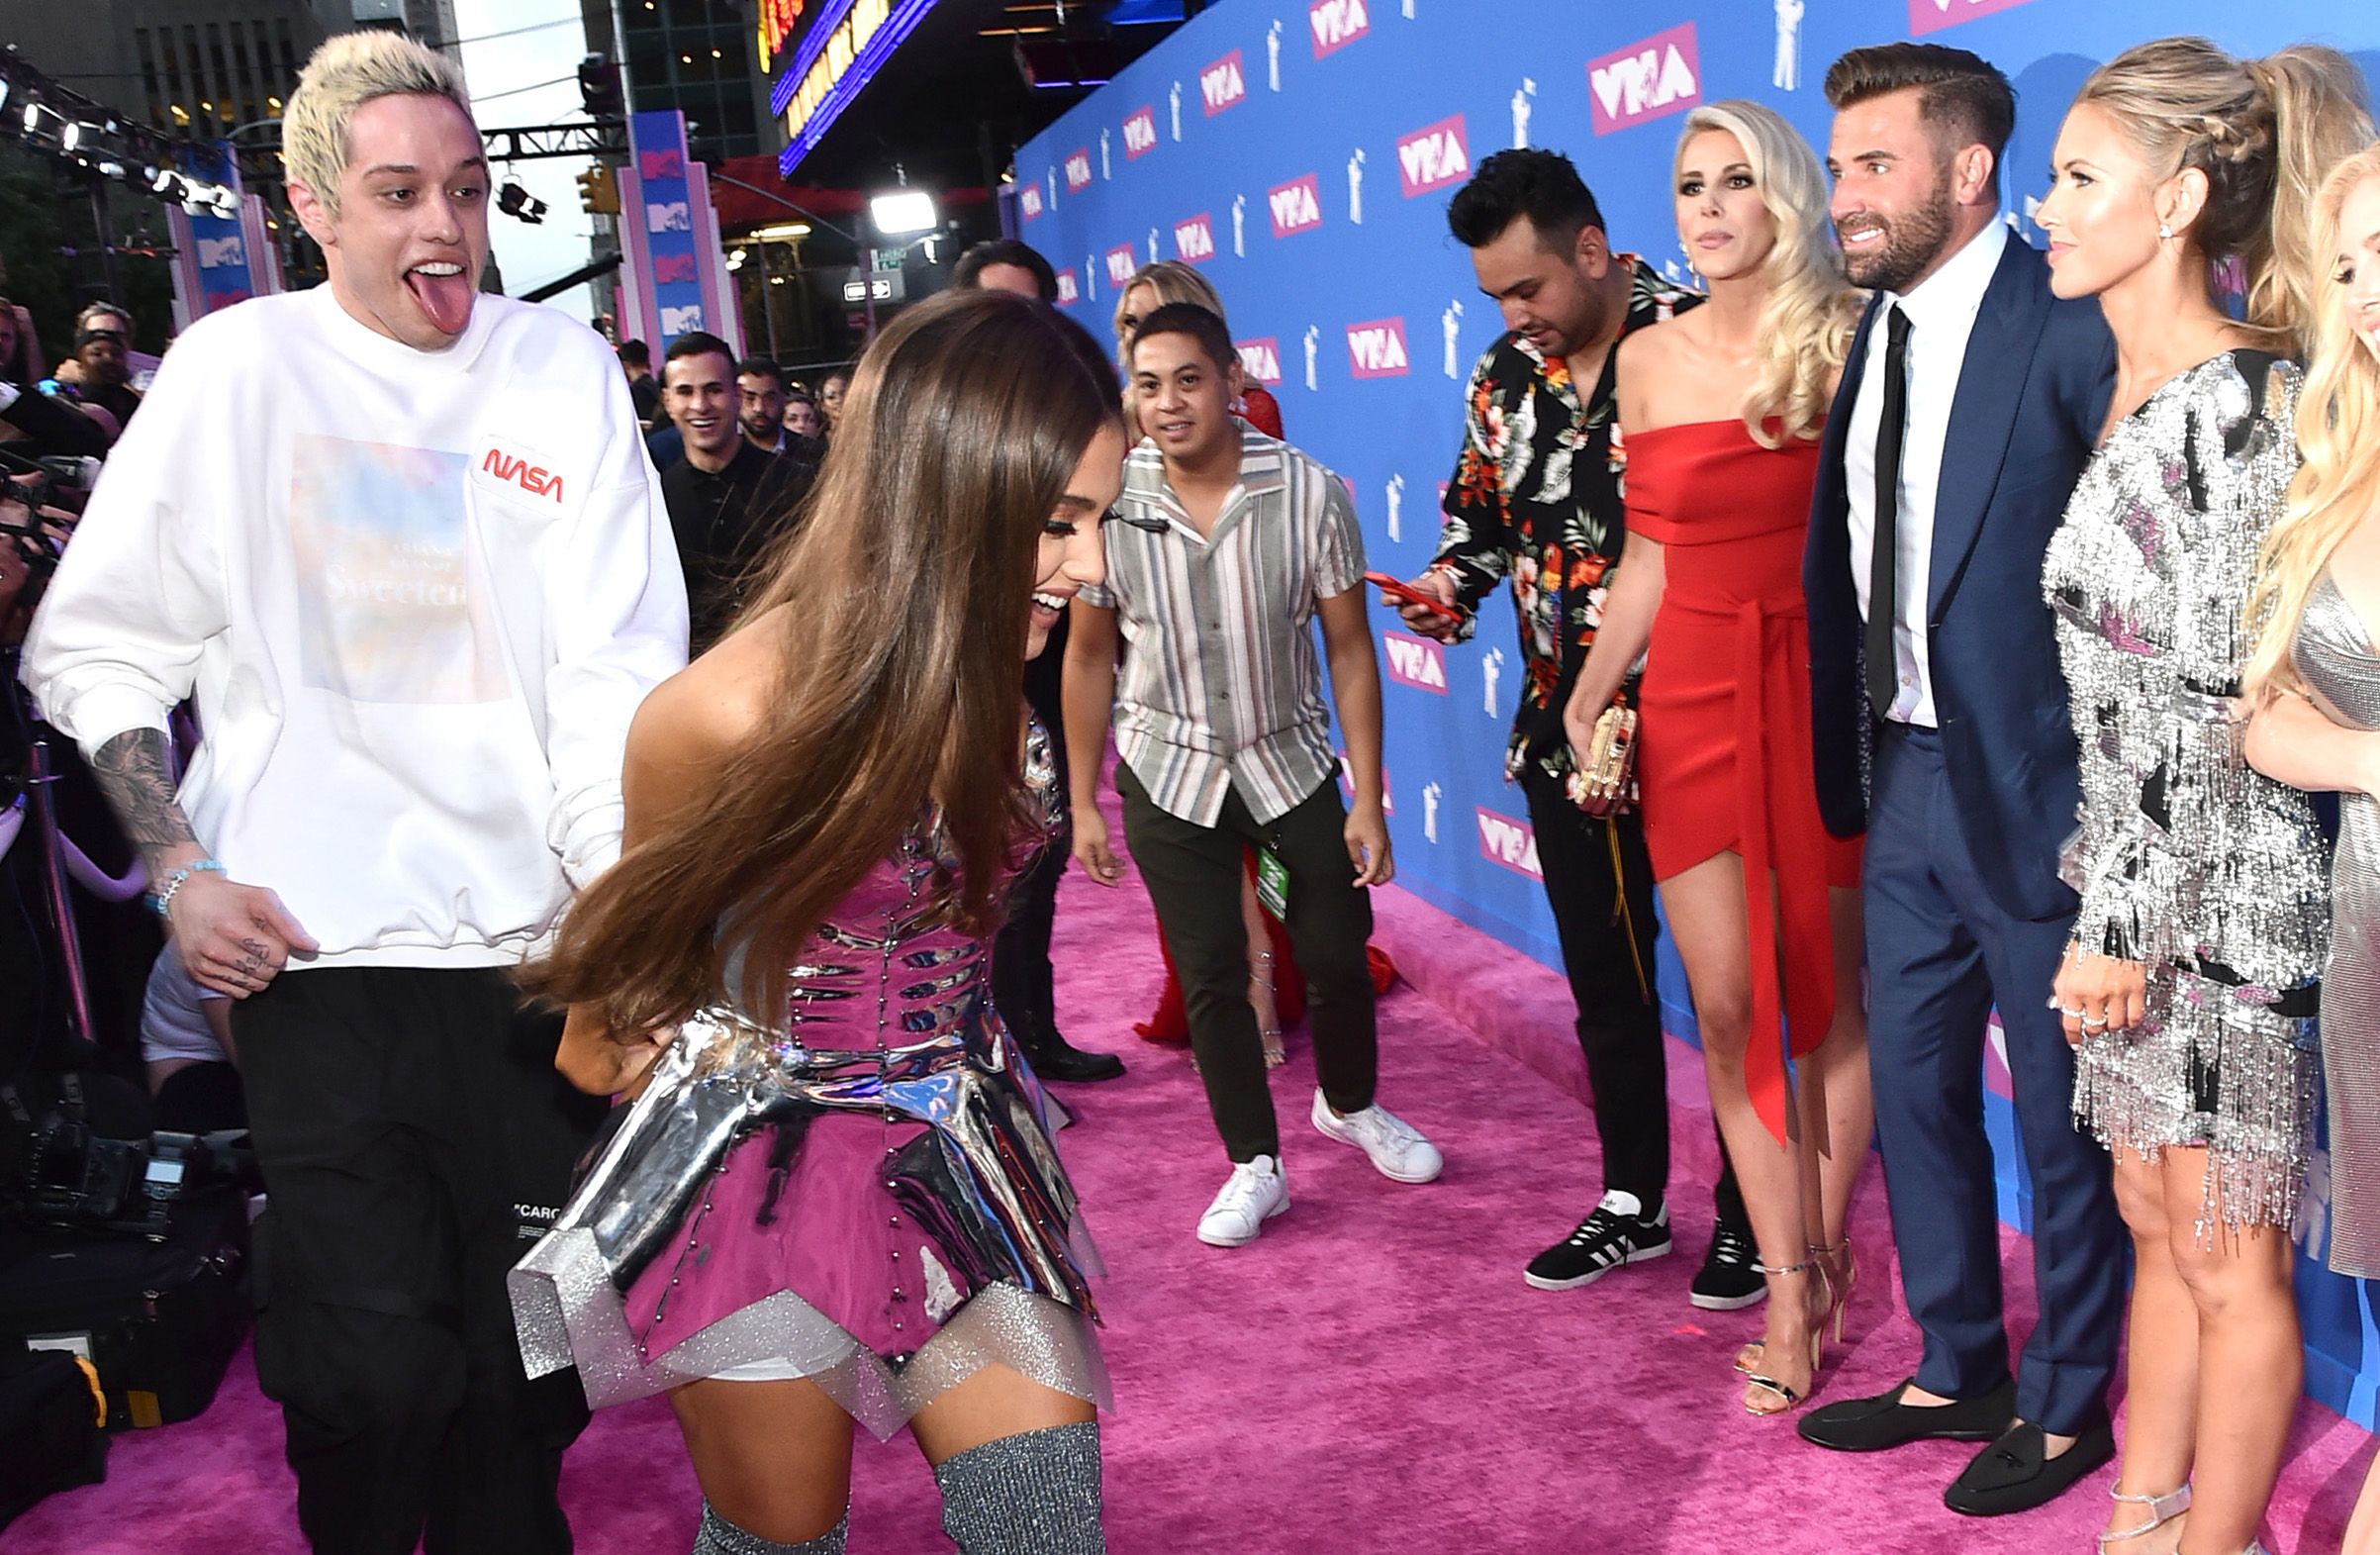 Pete Davidson and Ariana Grande attend the 2018 MTV Video Music Awards at Radio City Music Hall on in New York City on Aug. 20, 2018.